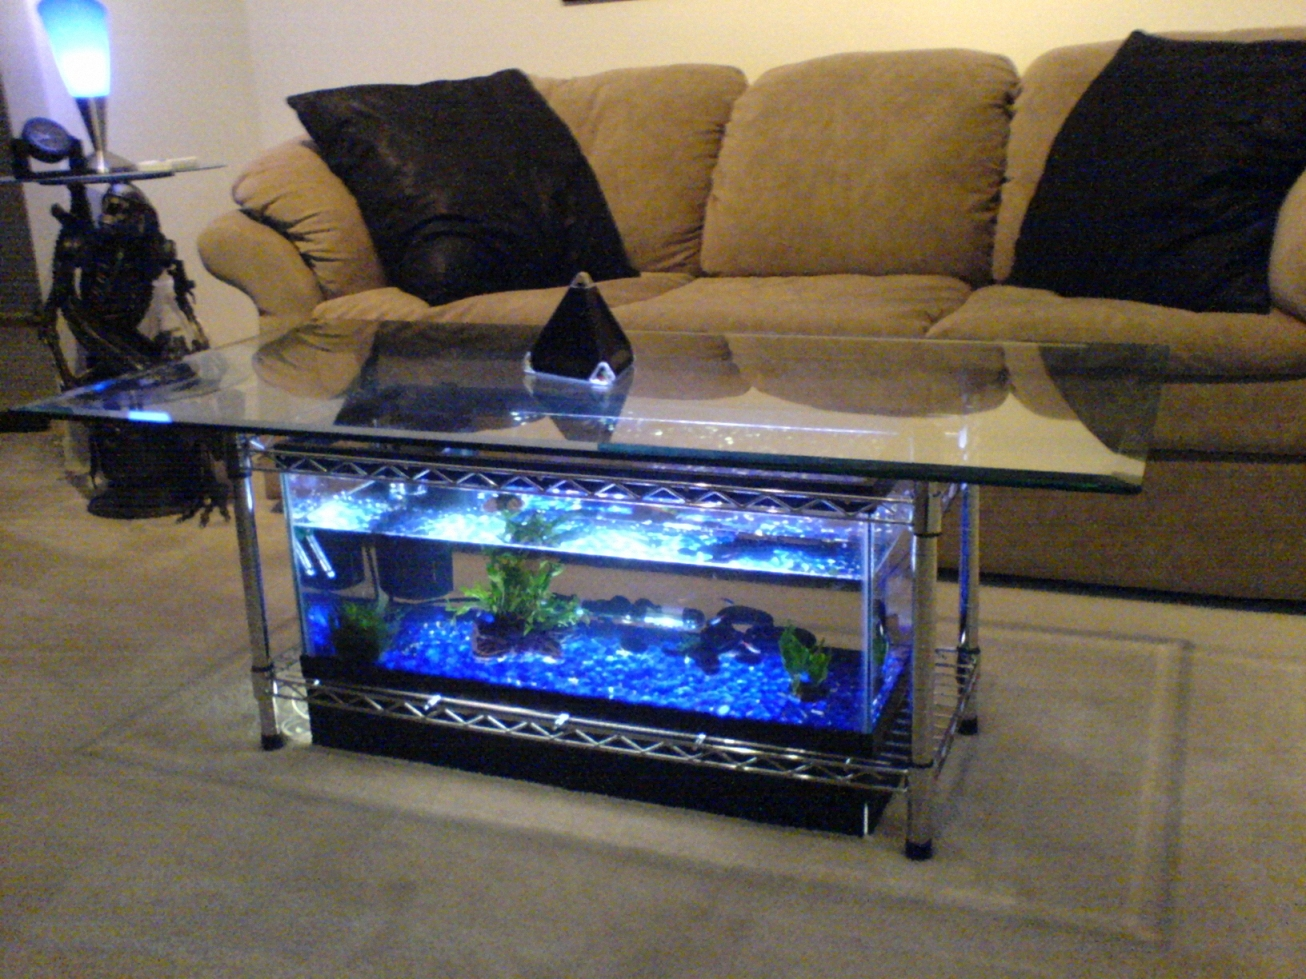 Woodwork How To Make A Coffee Table Aquarium Pdf Plans